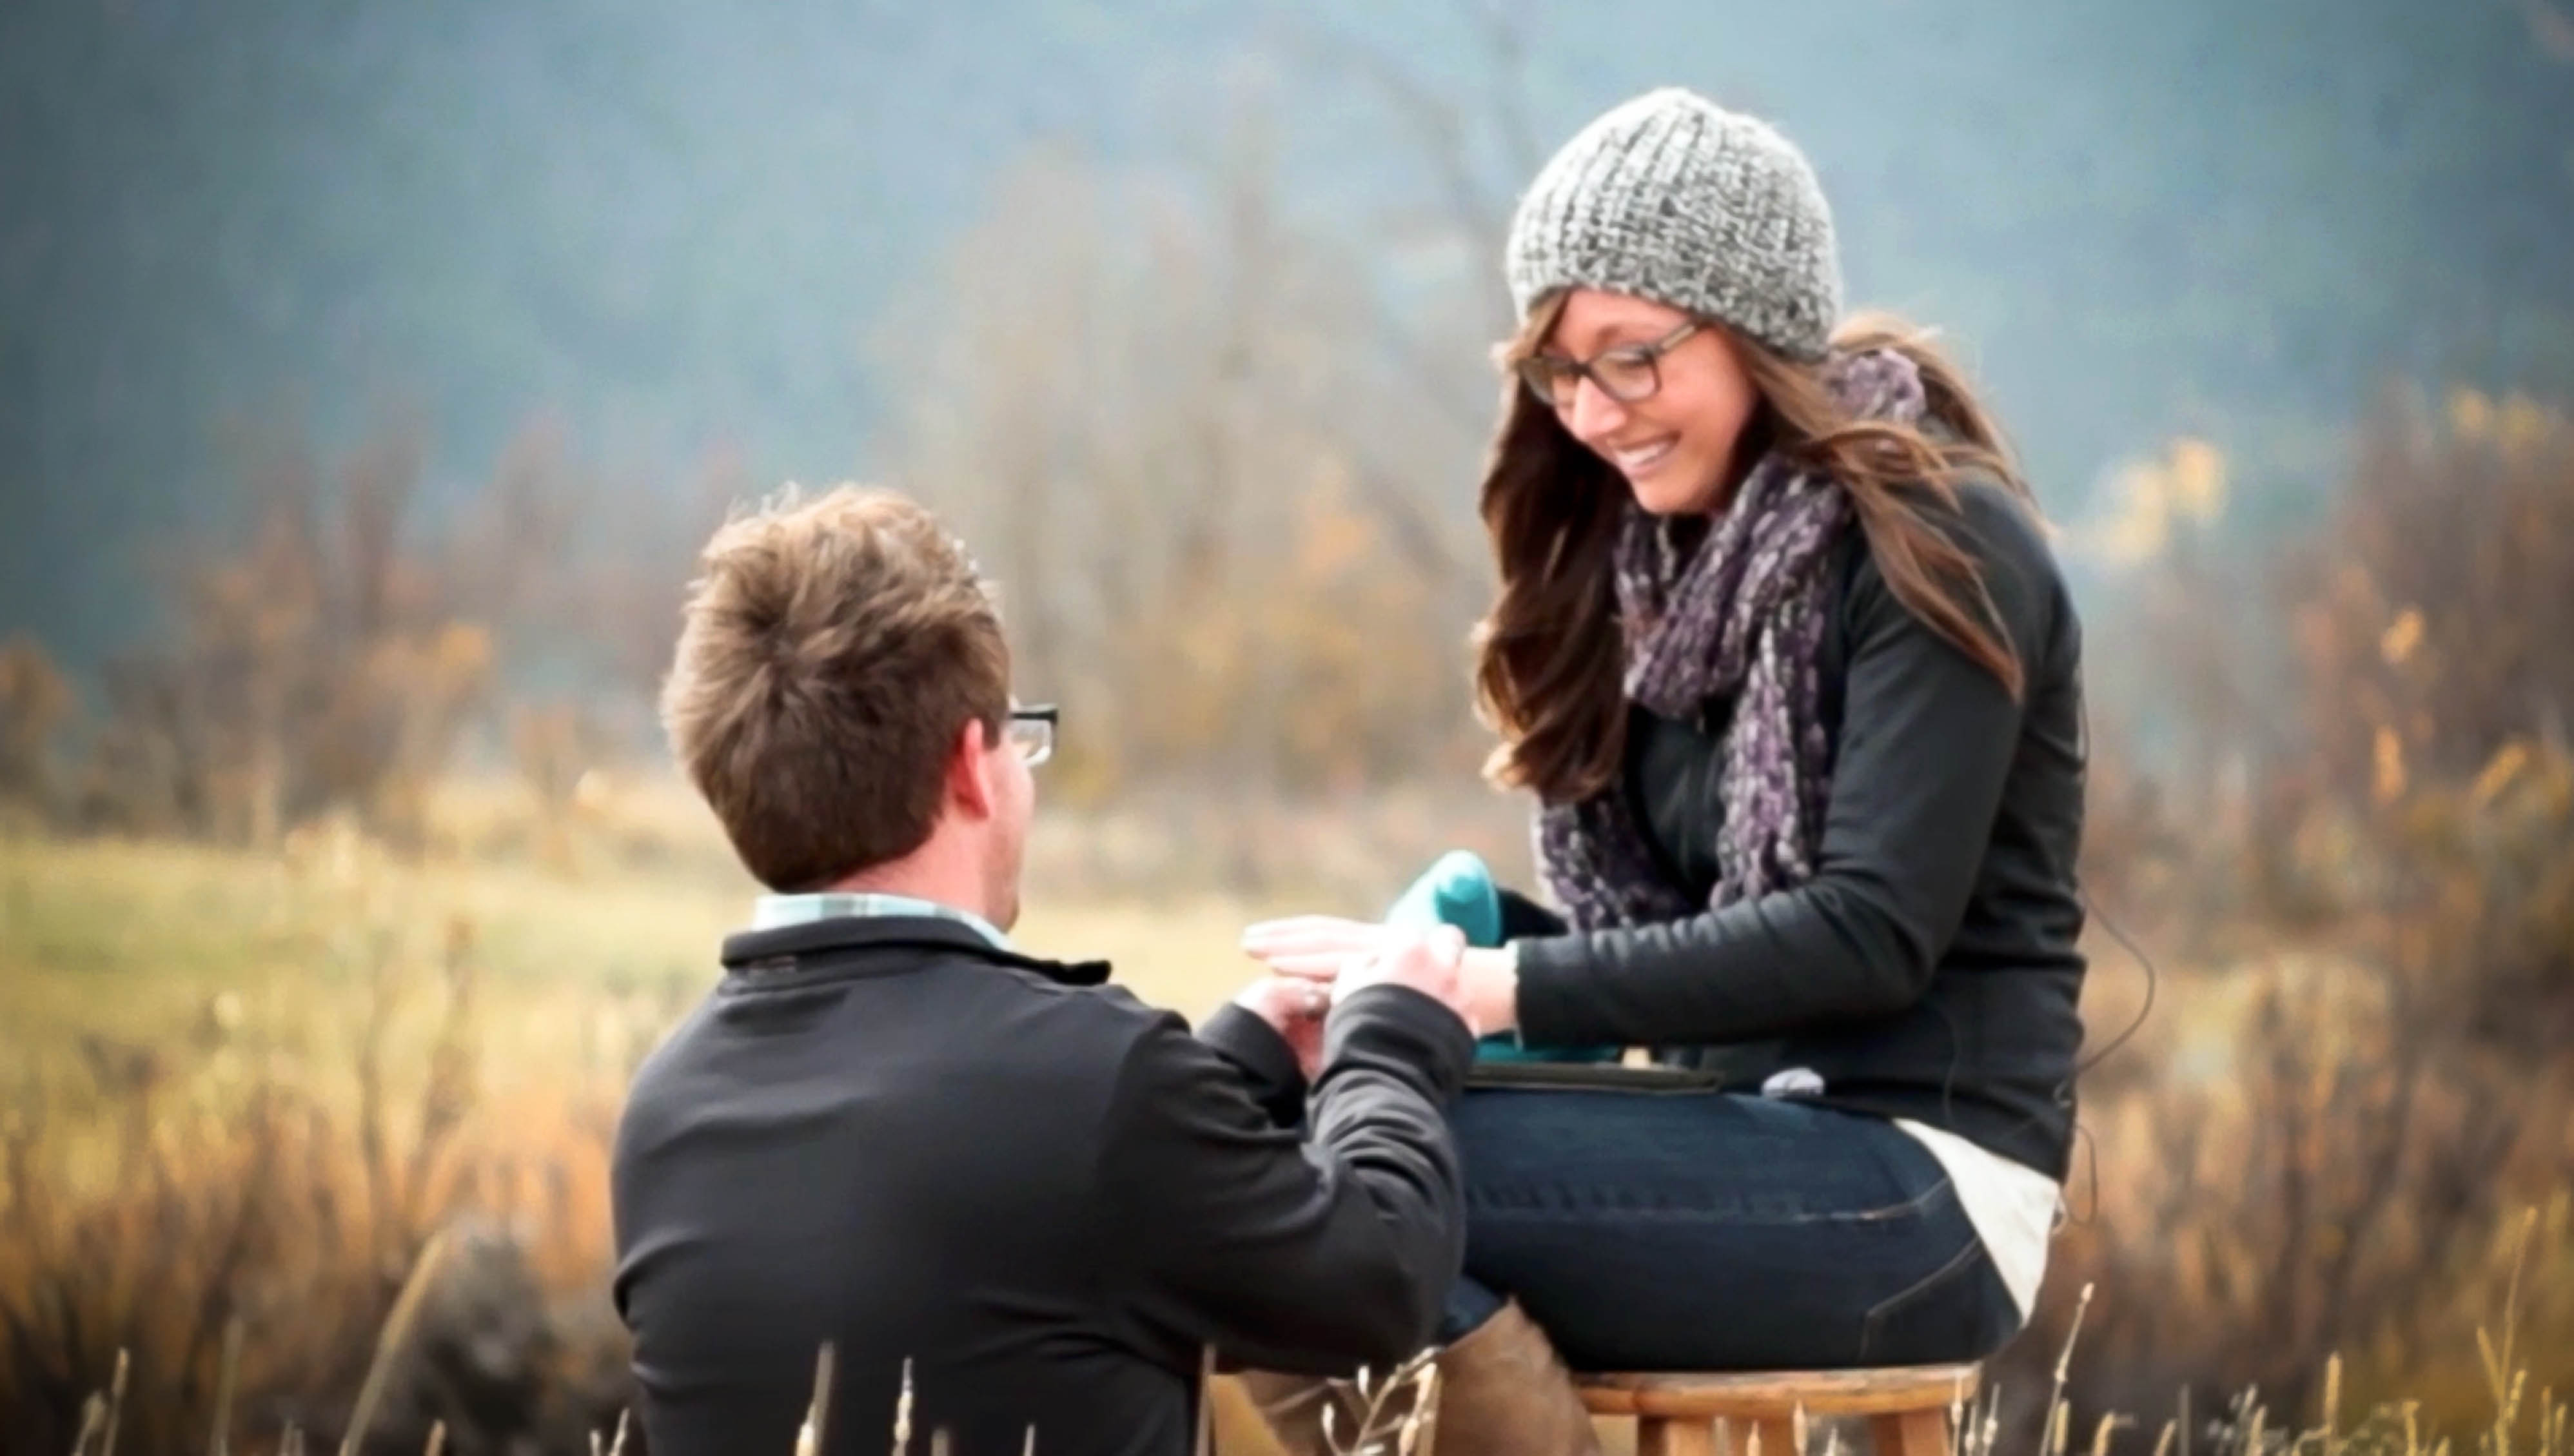 Image 1 of Dave and Shanna's Outdoor Colorado Proposal